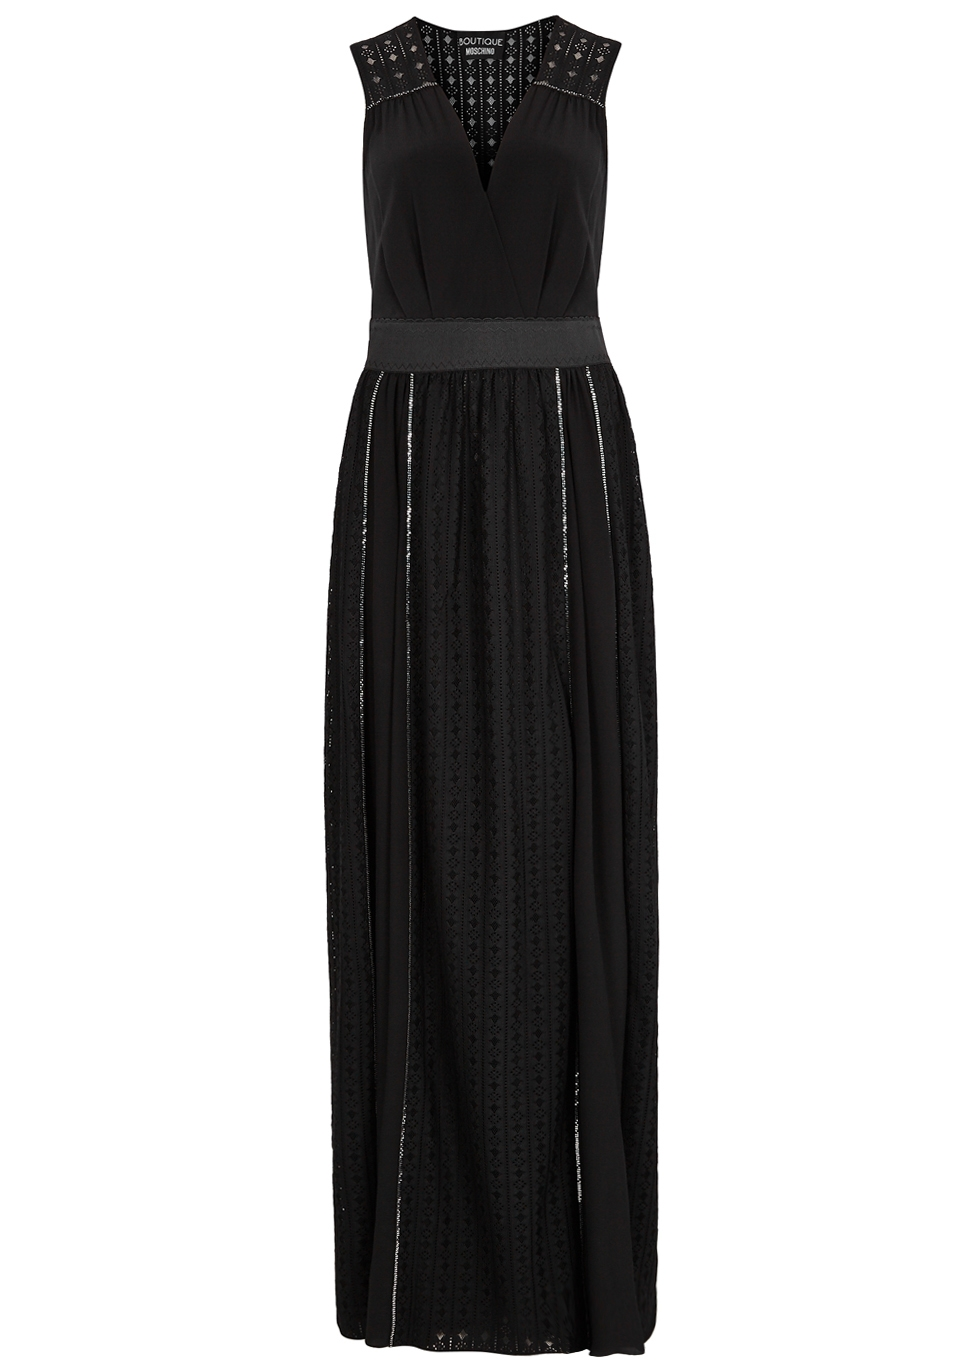 BOUTIQUE MOSCHINO BLACK CHAIN-EMBELLISHED LACE GOWN